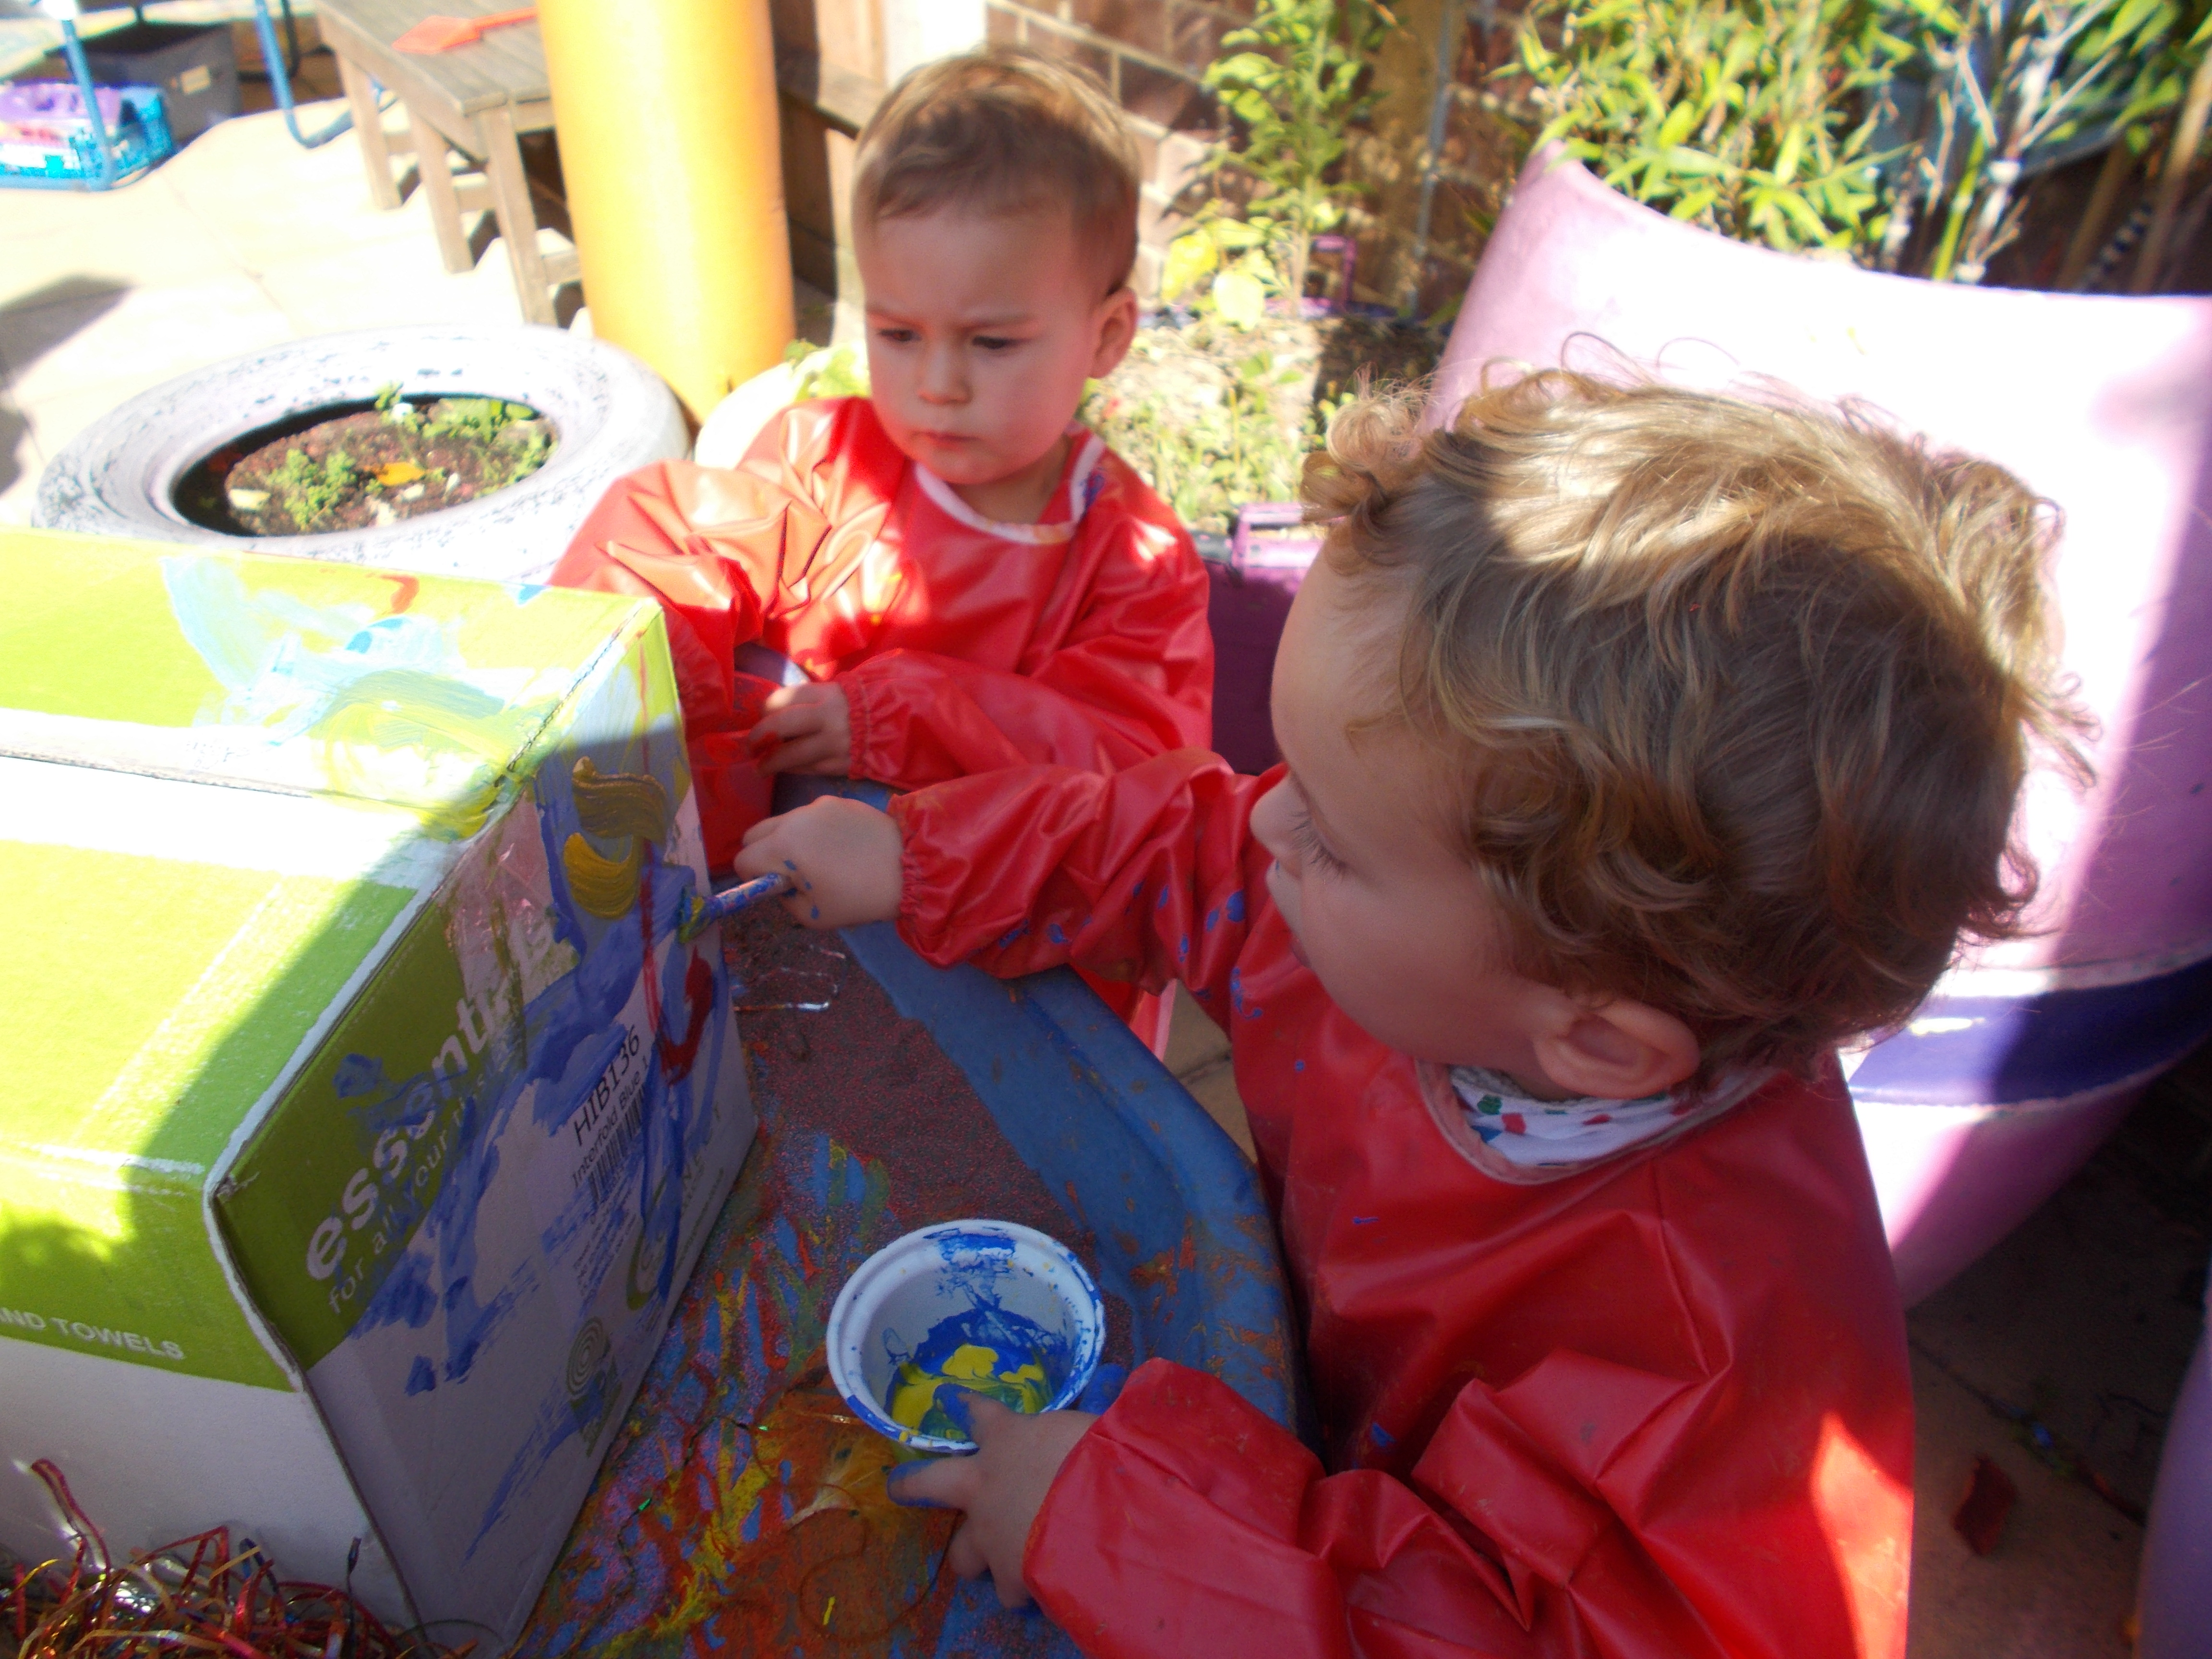 junk modelling for children child development At 4-5 years, your preschooler is learning to express emotion and likes to be around people read how to help child development and spot delay at this age.